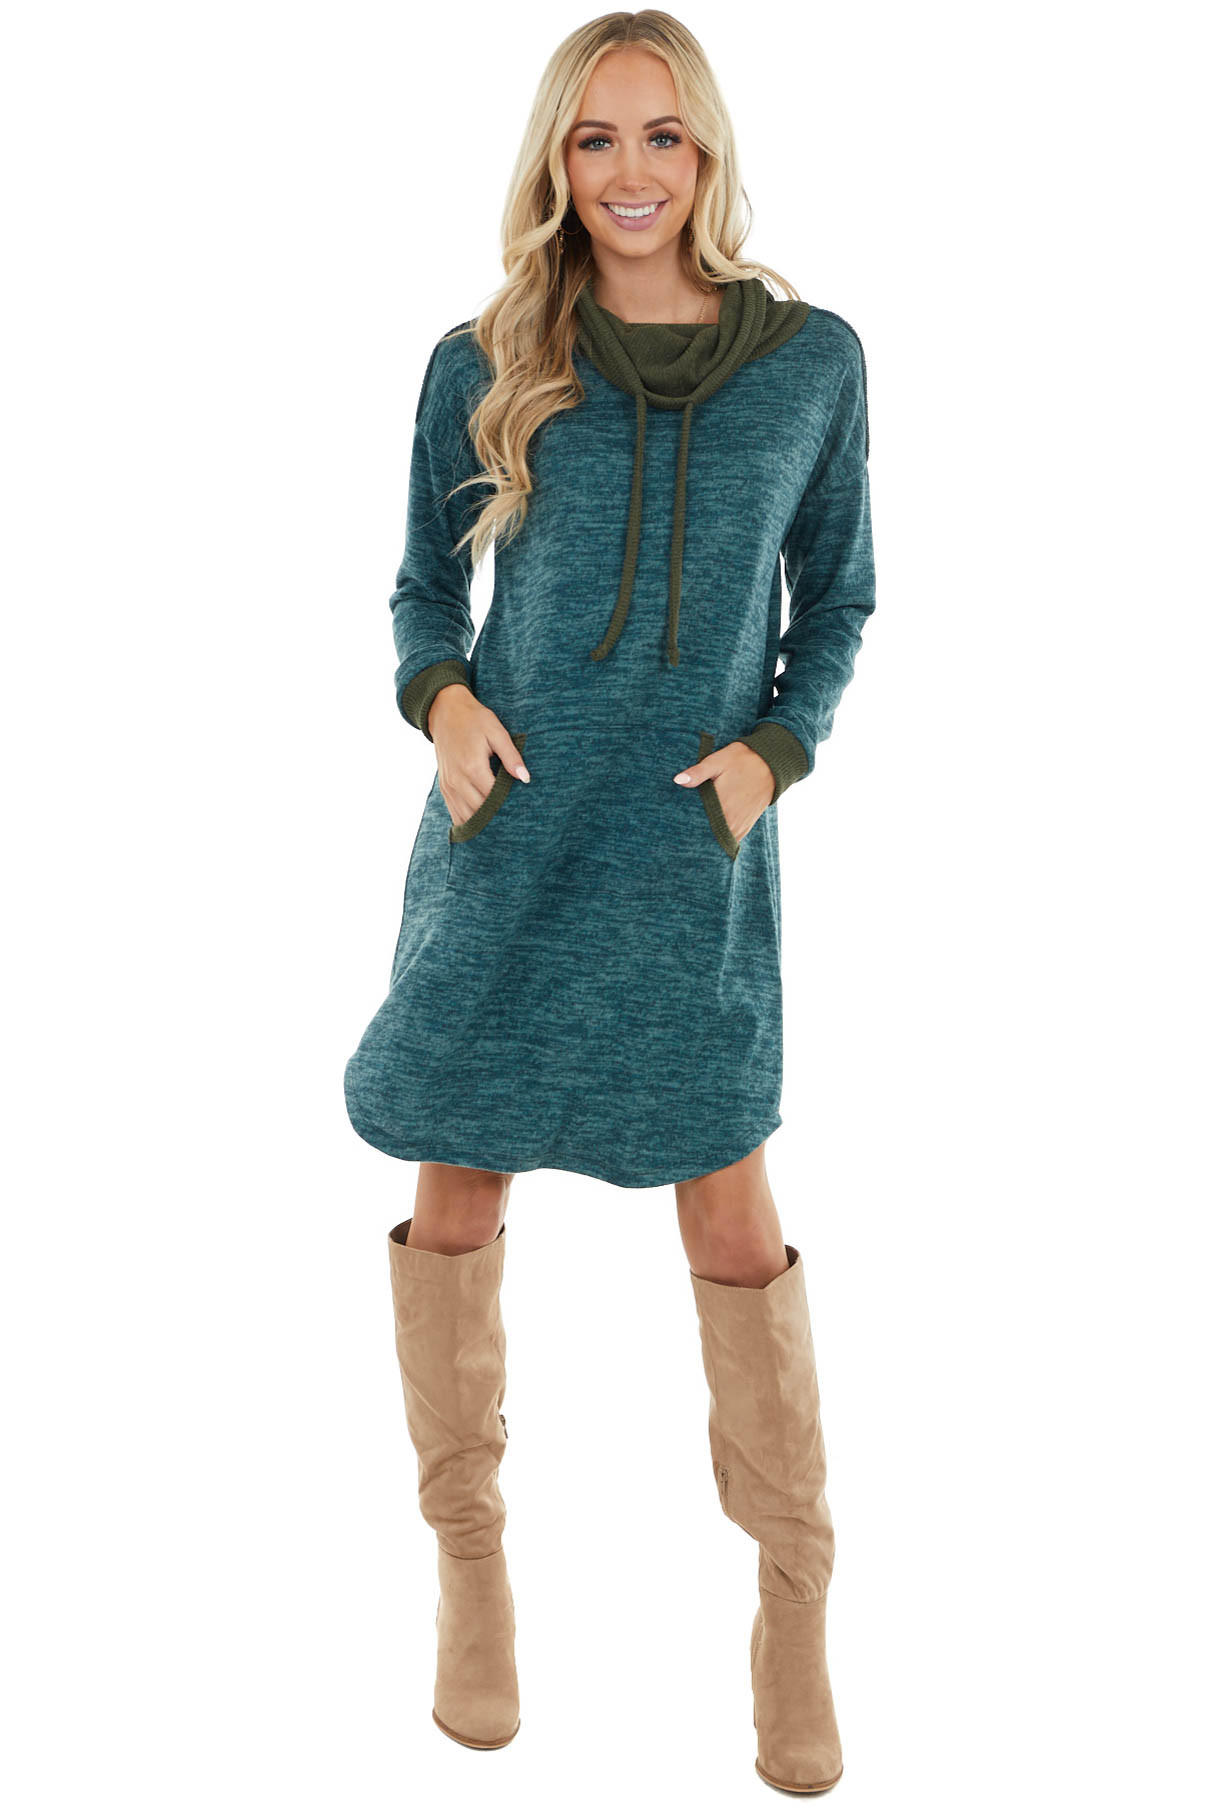 Ocean Blue Two Tone Lightweight Sweater Dress with Cowl Neck